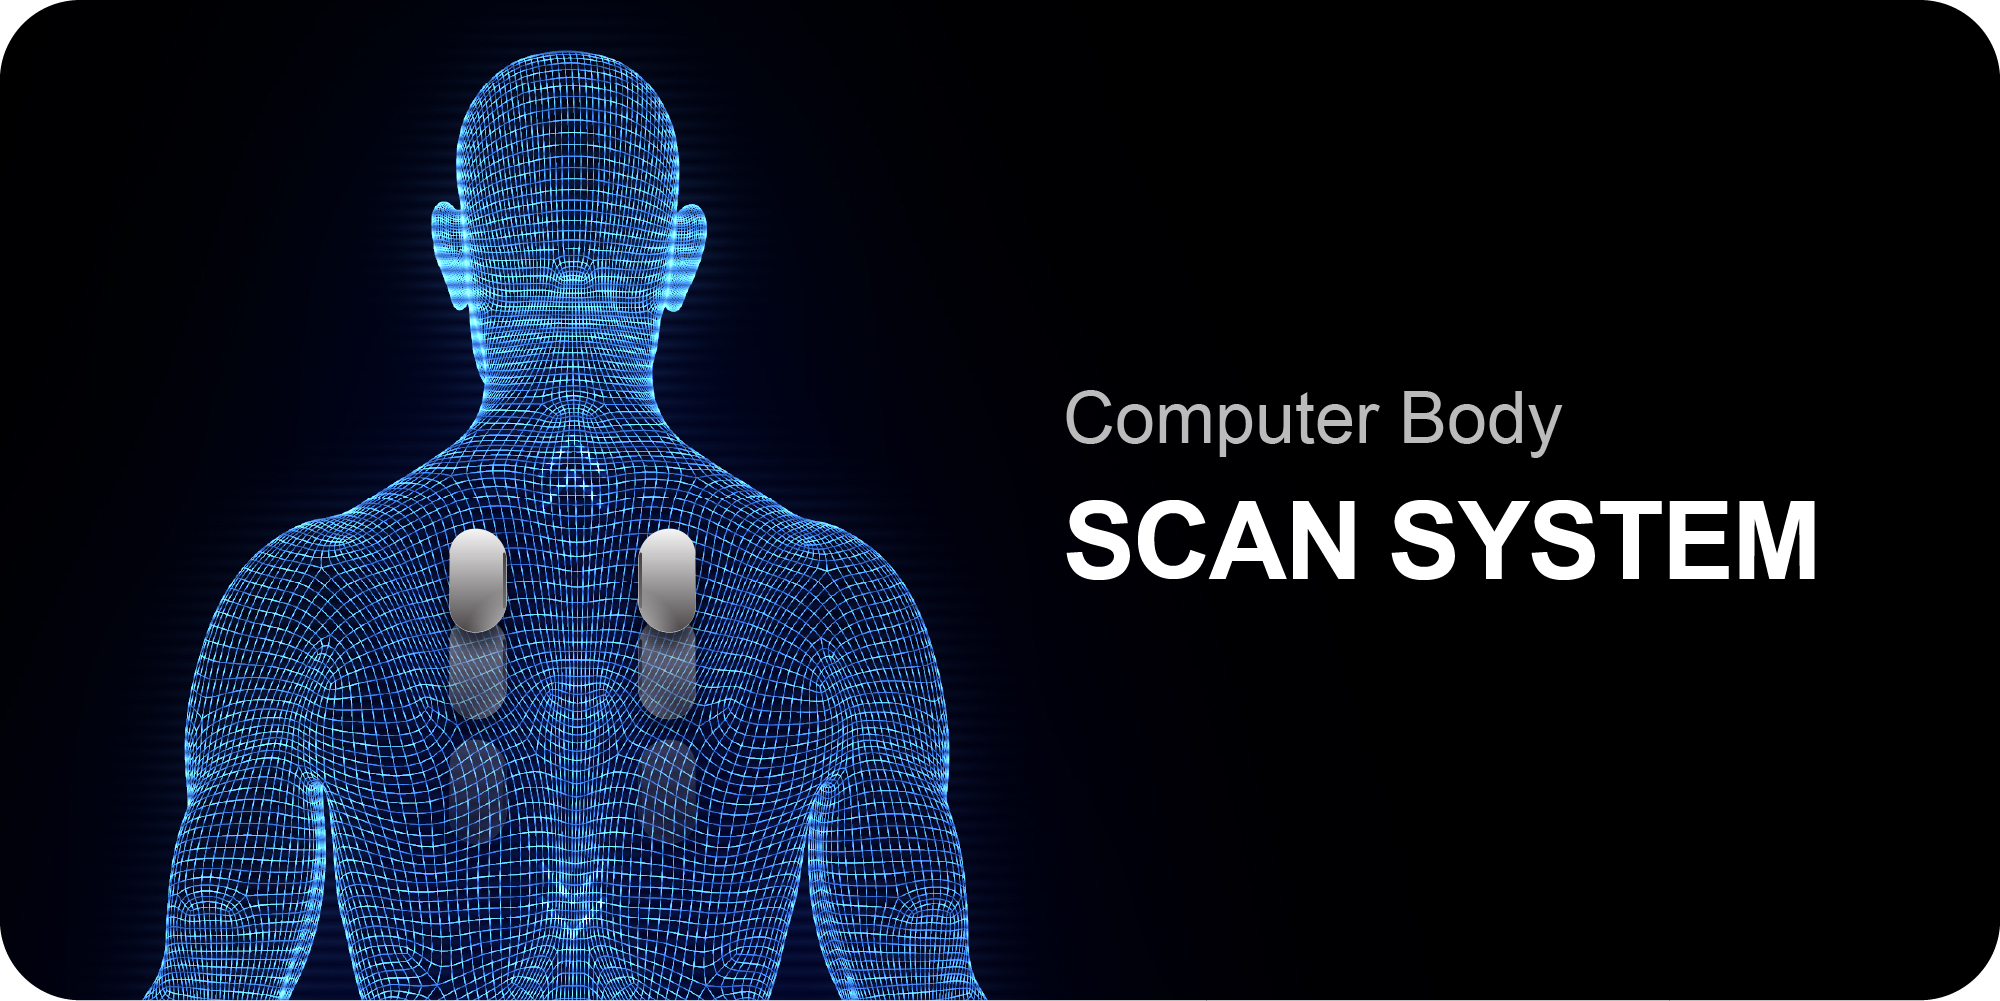 COMPUTER SCAN SYSTEM